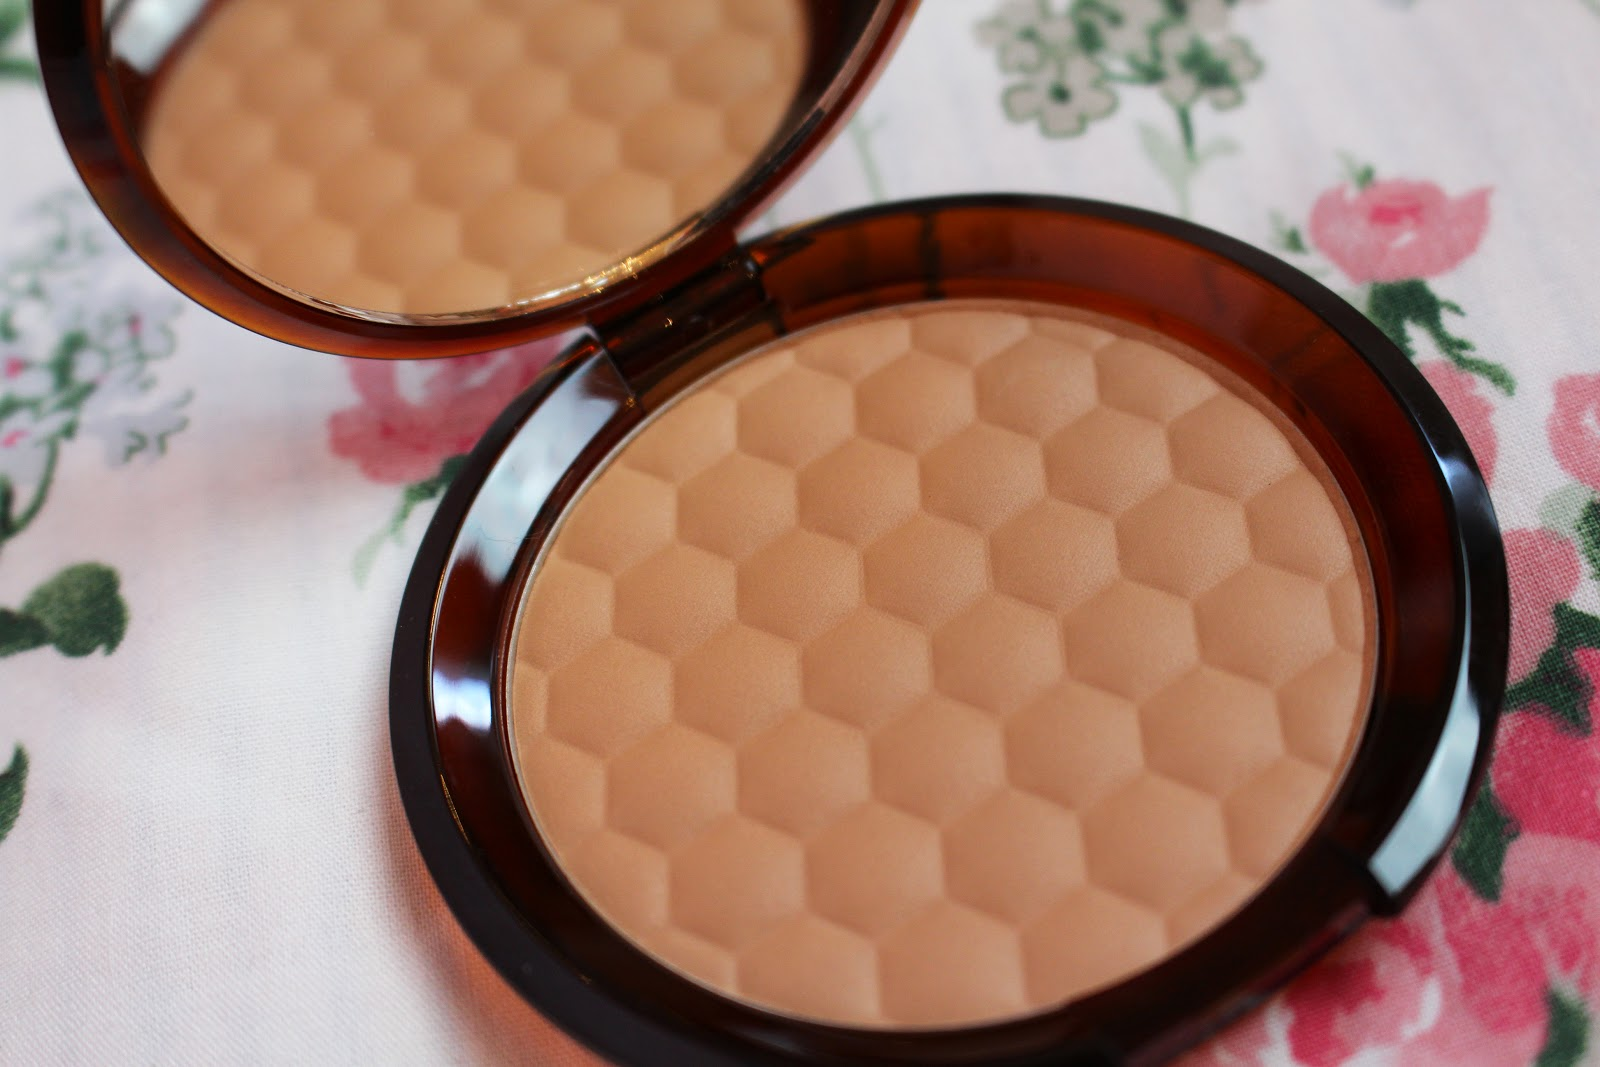 The Body Shop Honey Bronze Bronzing Powder